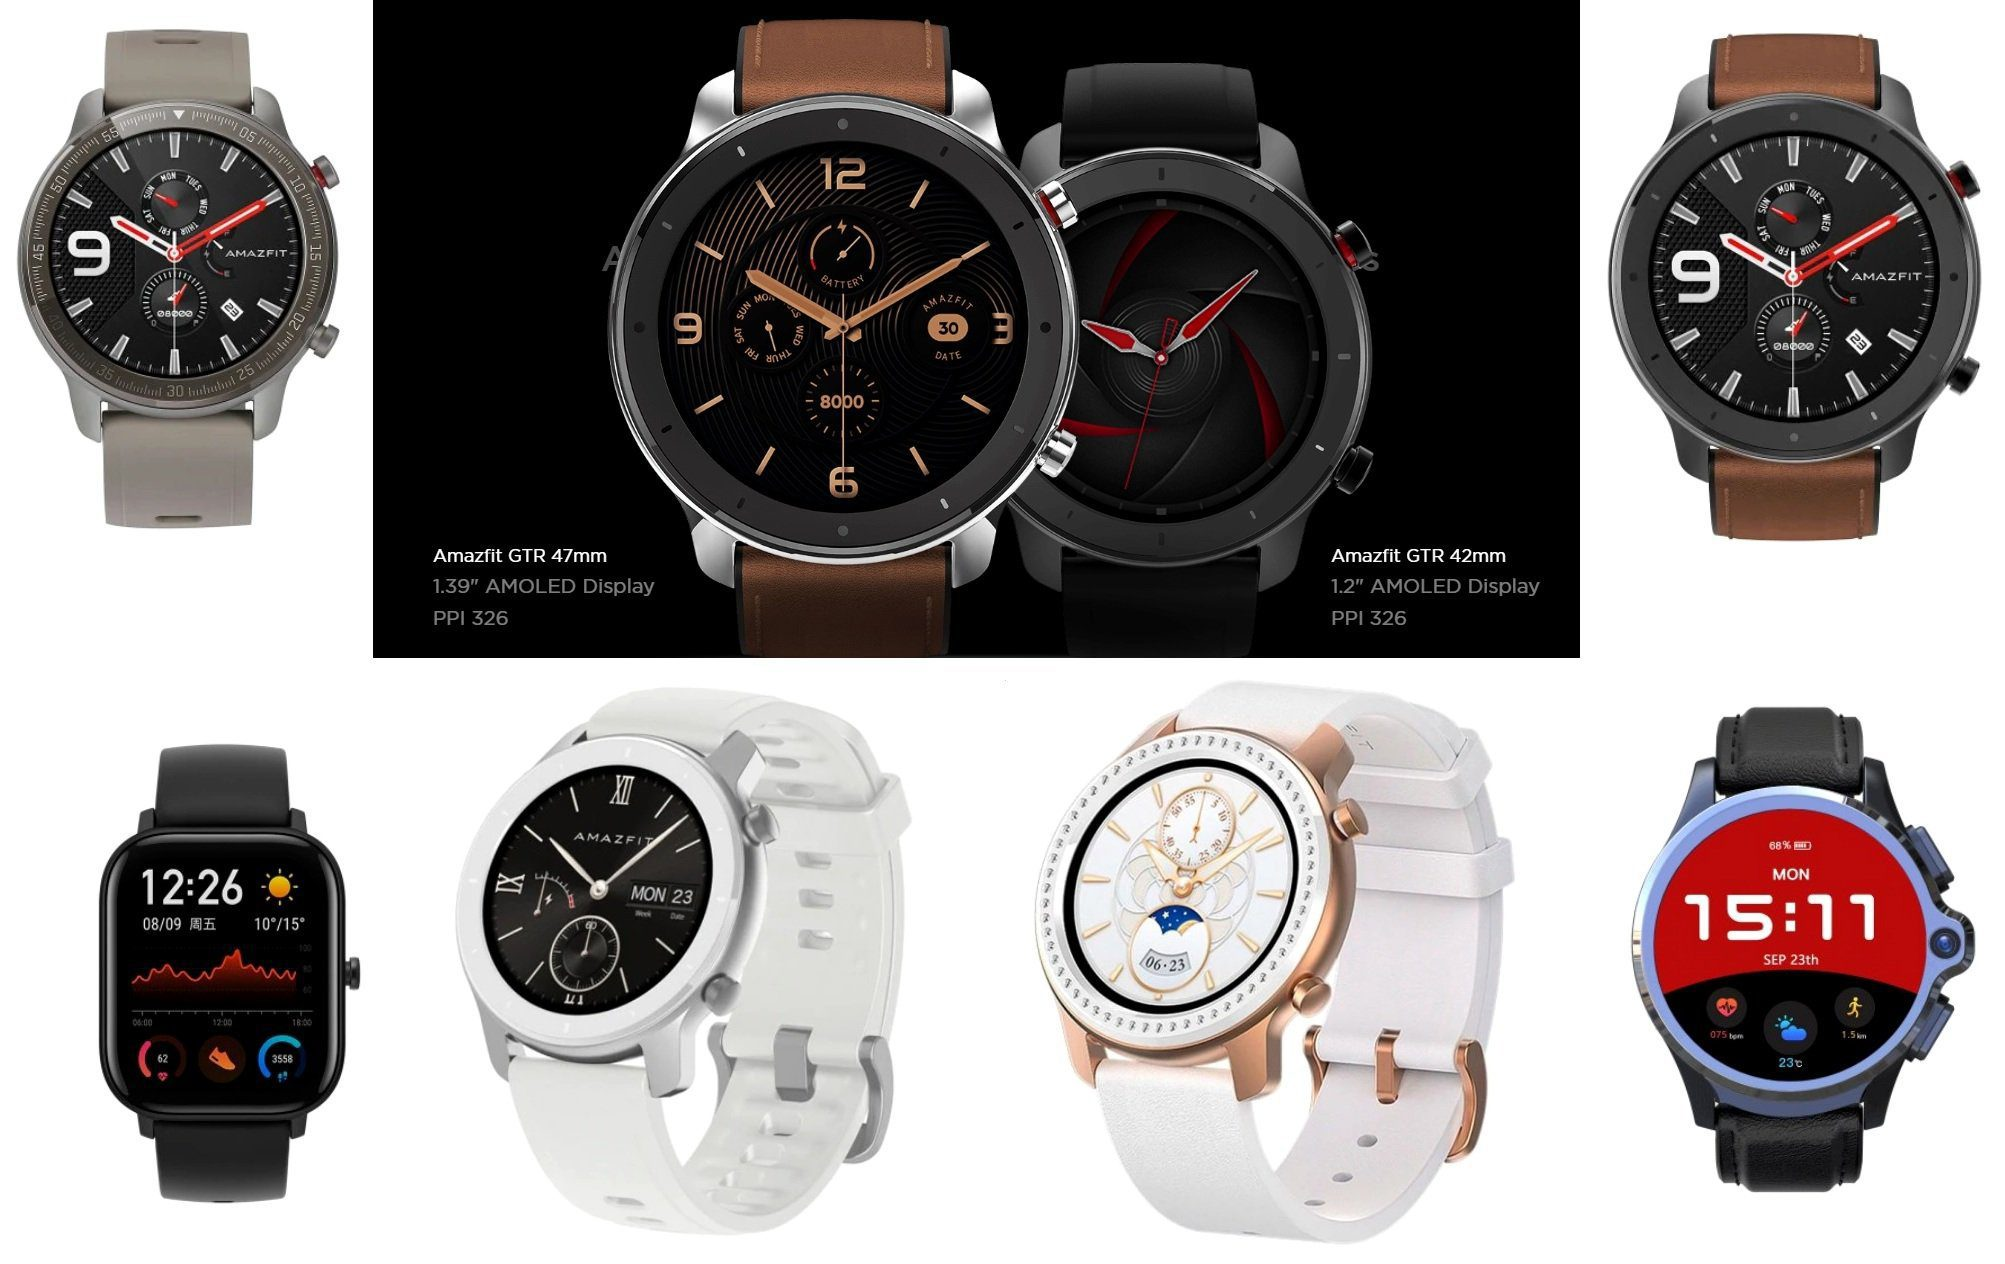 Gearbest Cyber Monday Amazfit Gtr Smartwatch And Other Deals